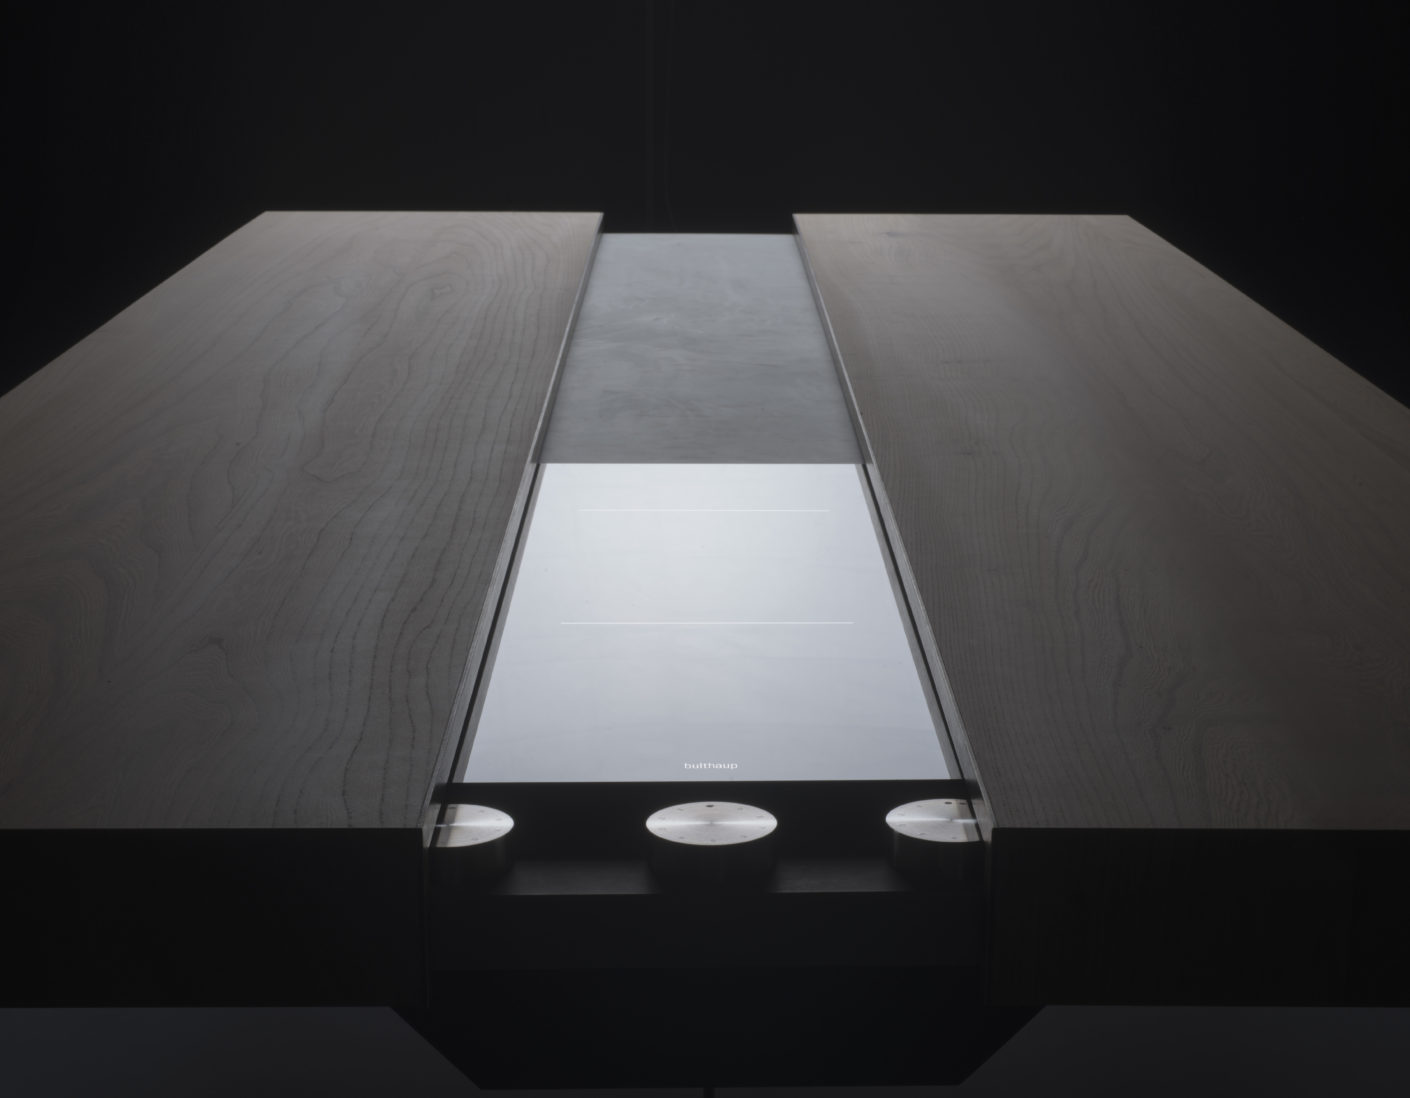 Relvão Kellermann, Projekte, Stylepark Selected, Bulthaup Solitaires Cooking Table